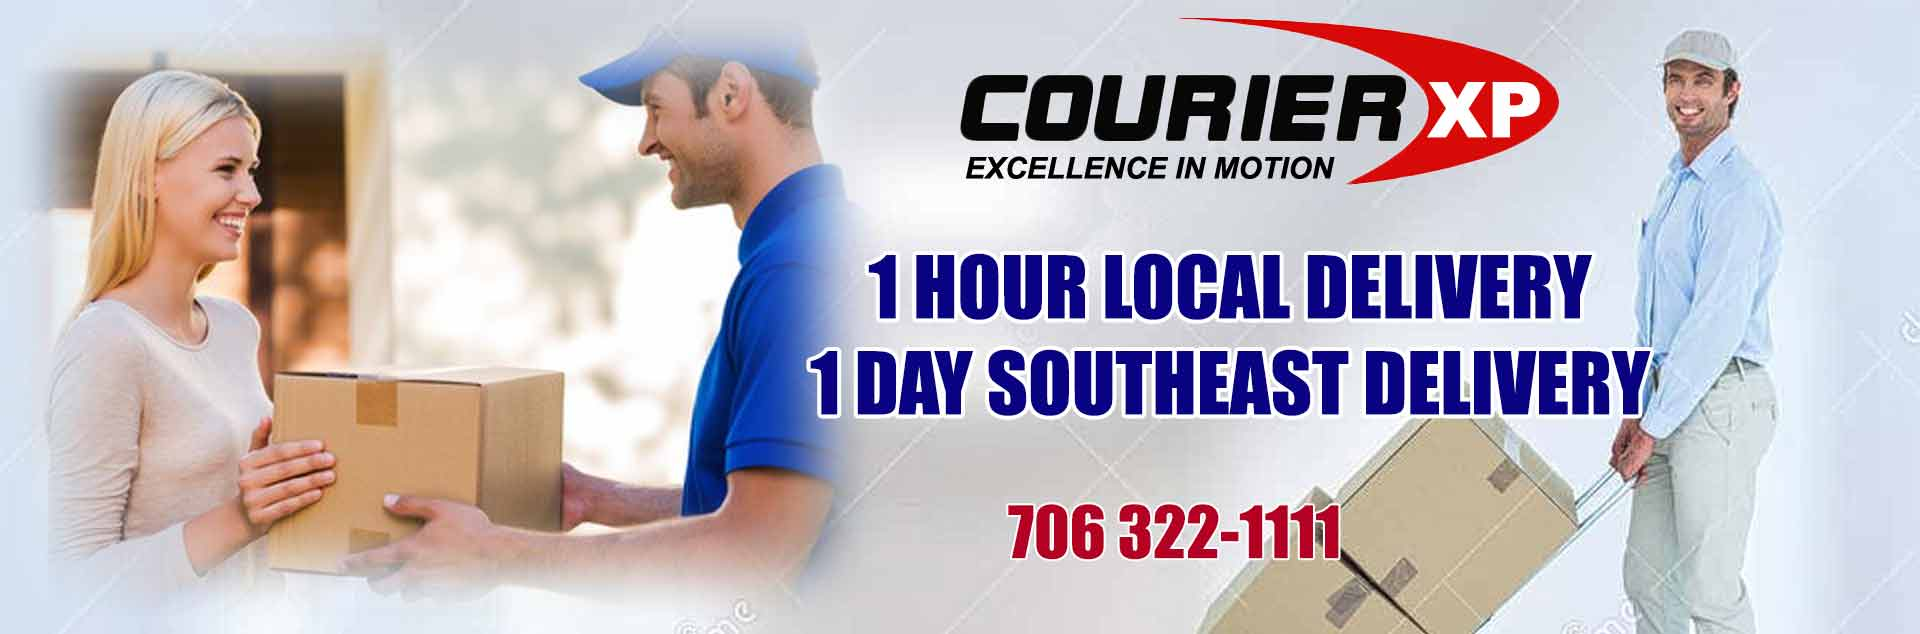 courier services Columbus Ga